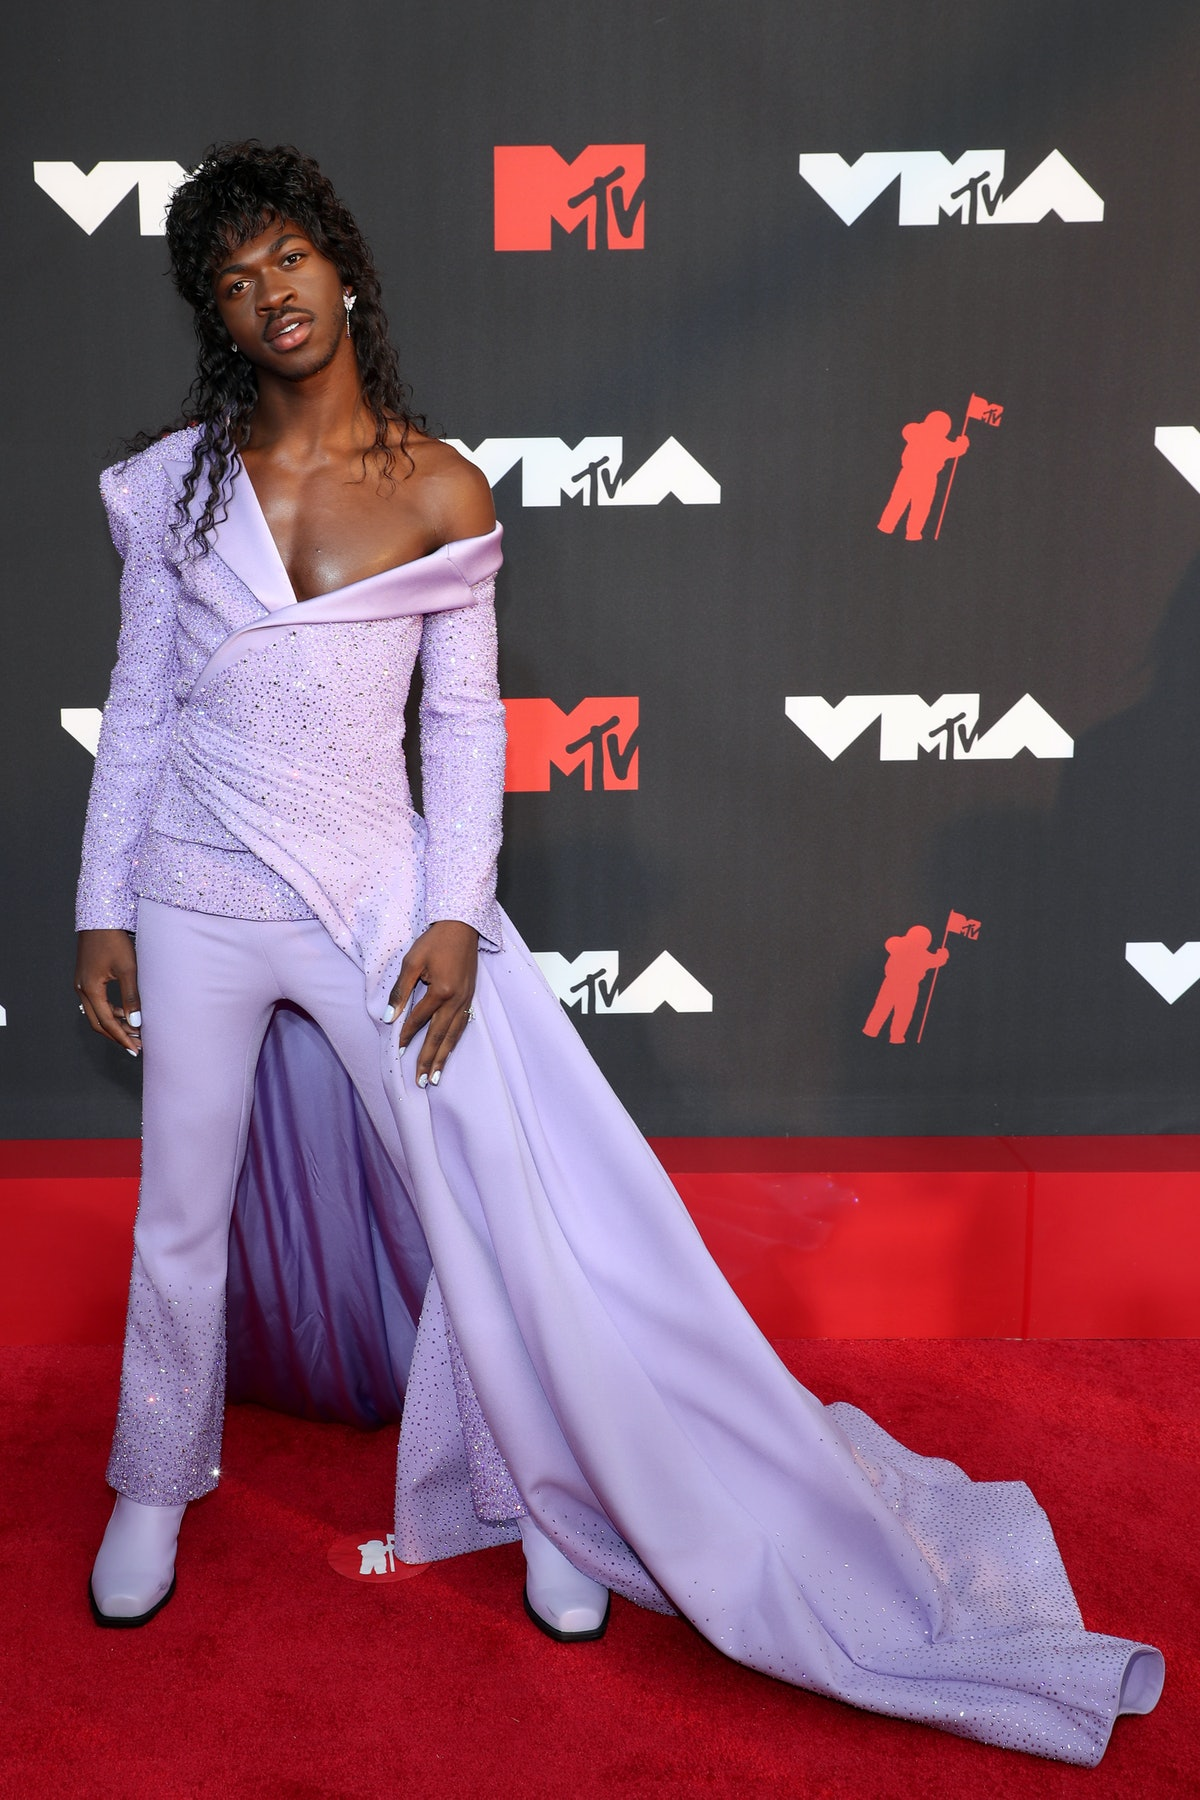 Lil Nas X attends the 2021 MTV Video Music Awards at Barclays Center on September 12, 2021 in the Br...